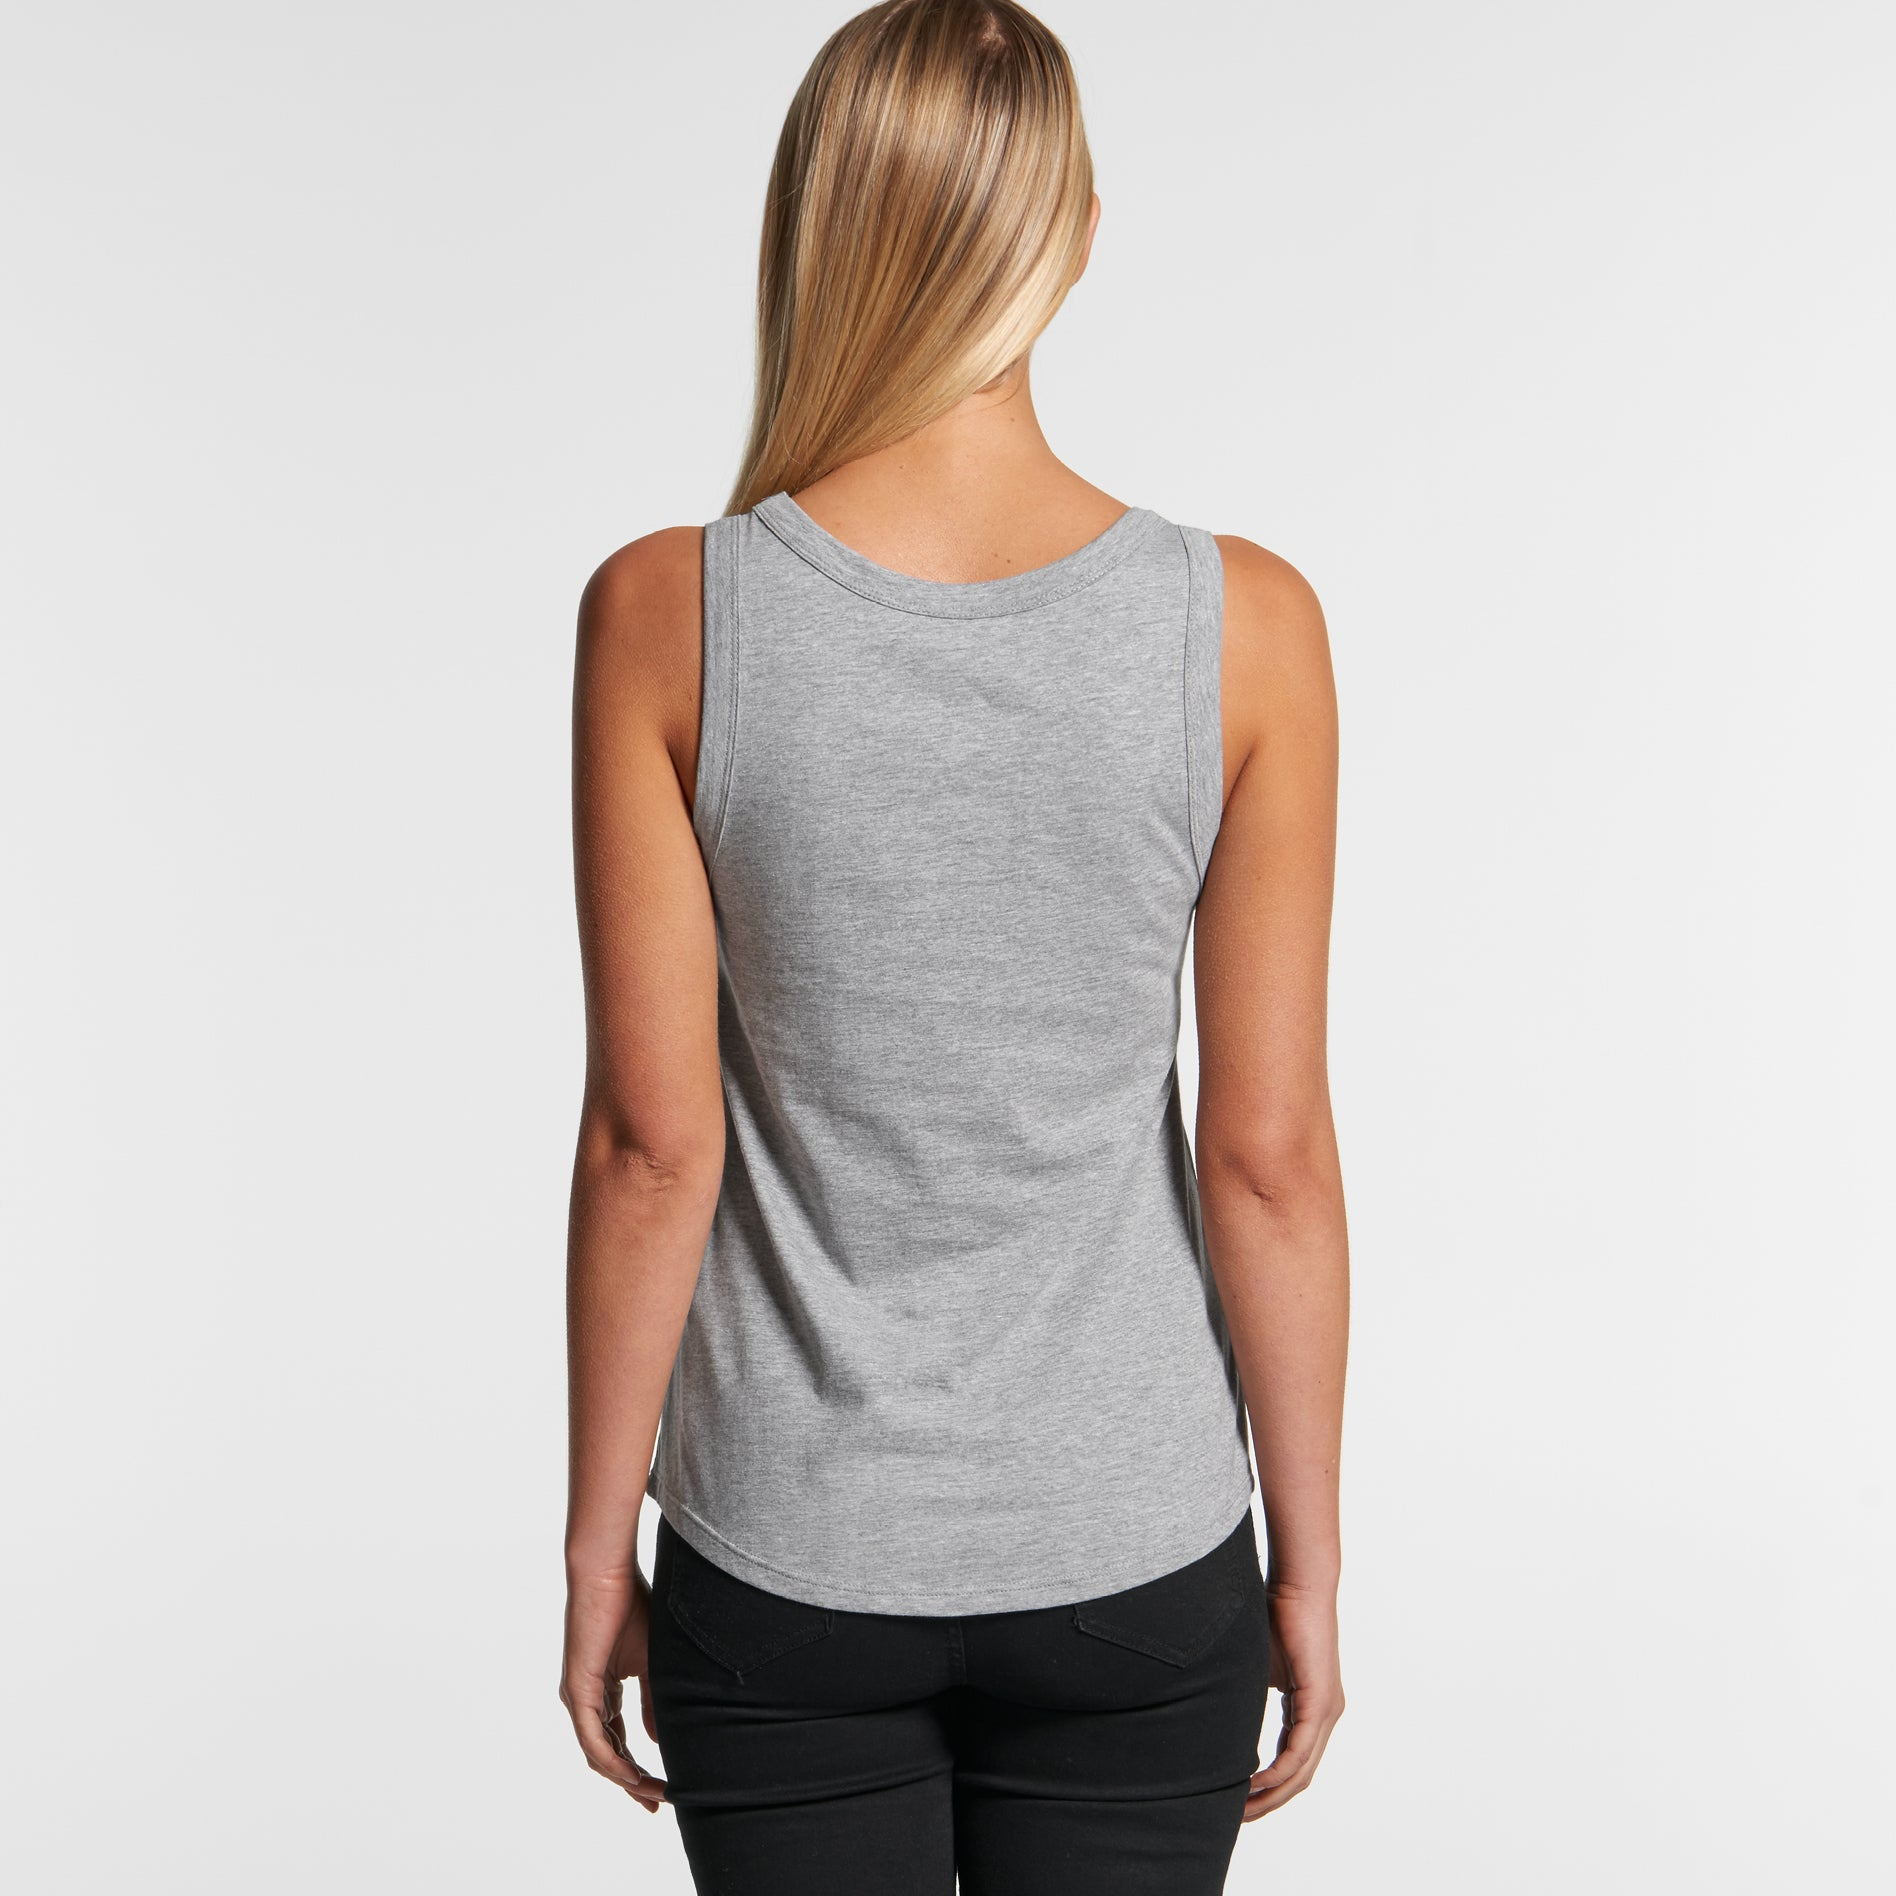 2ea746aa92207 Wo's singlets/Tanks – The Outfitters